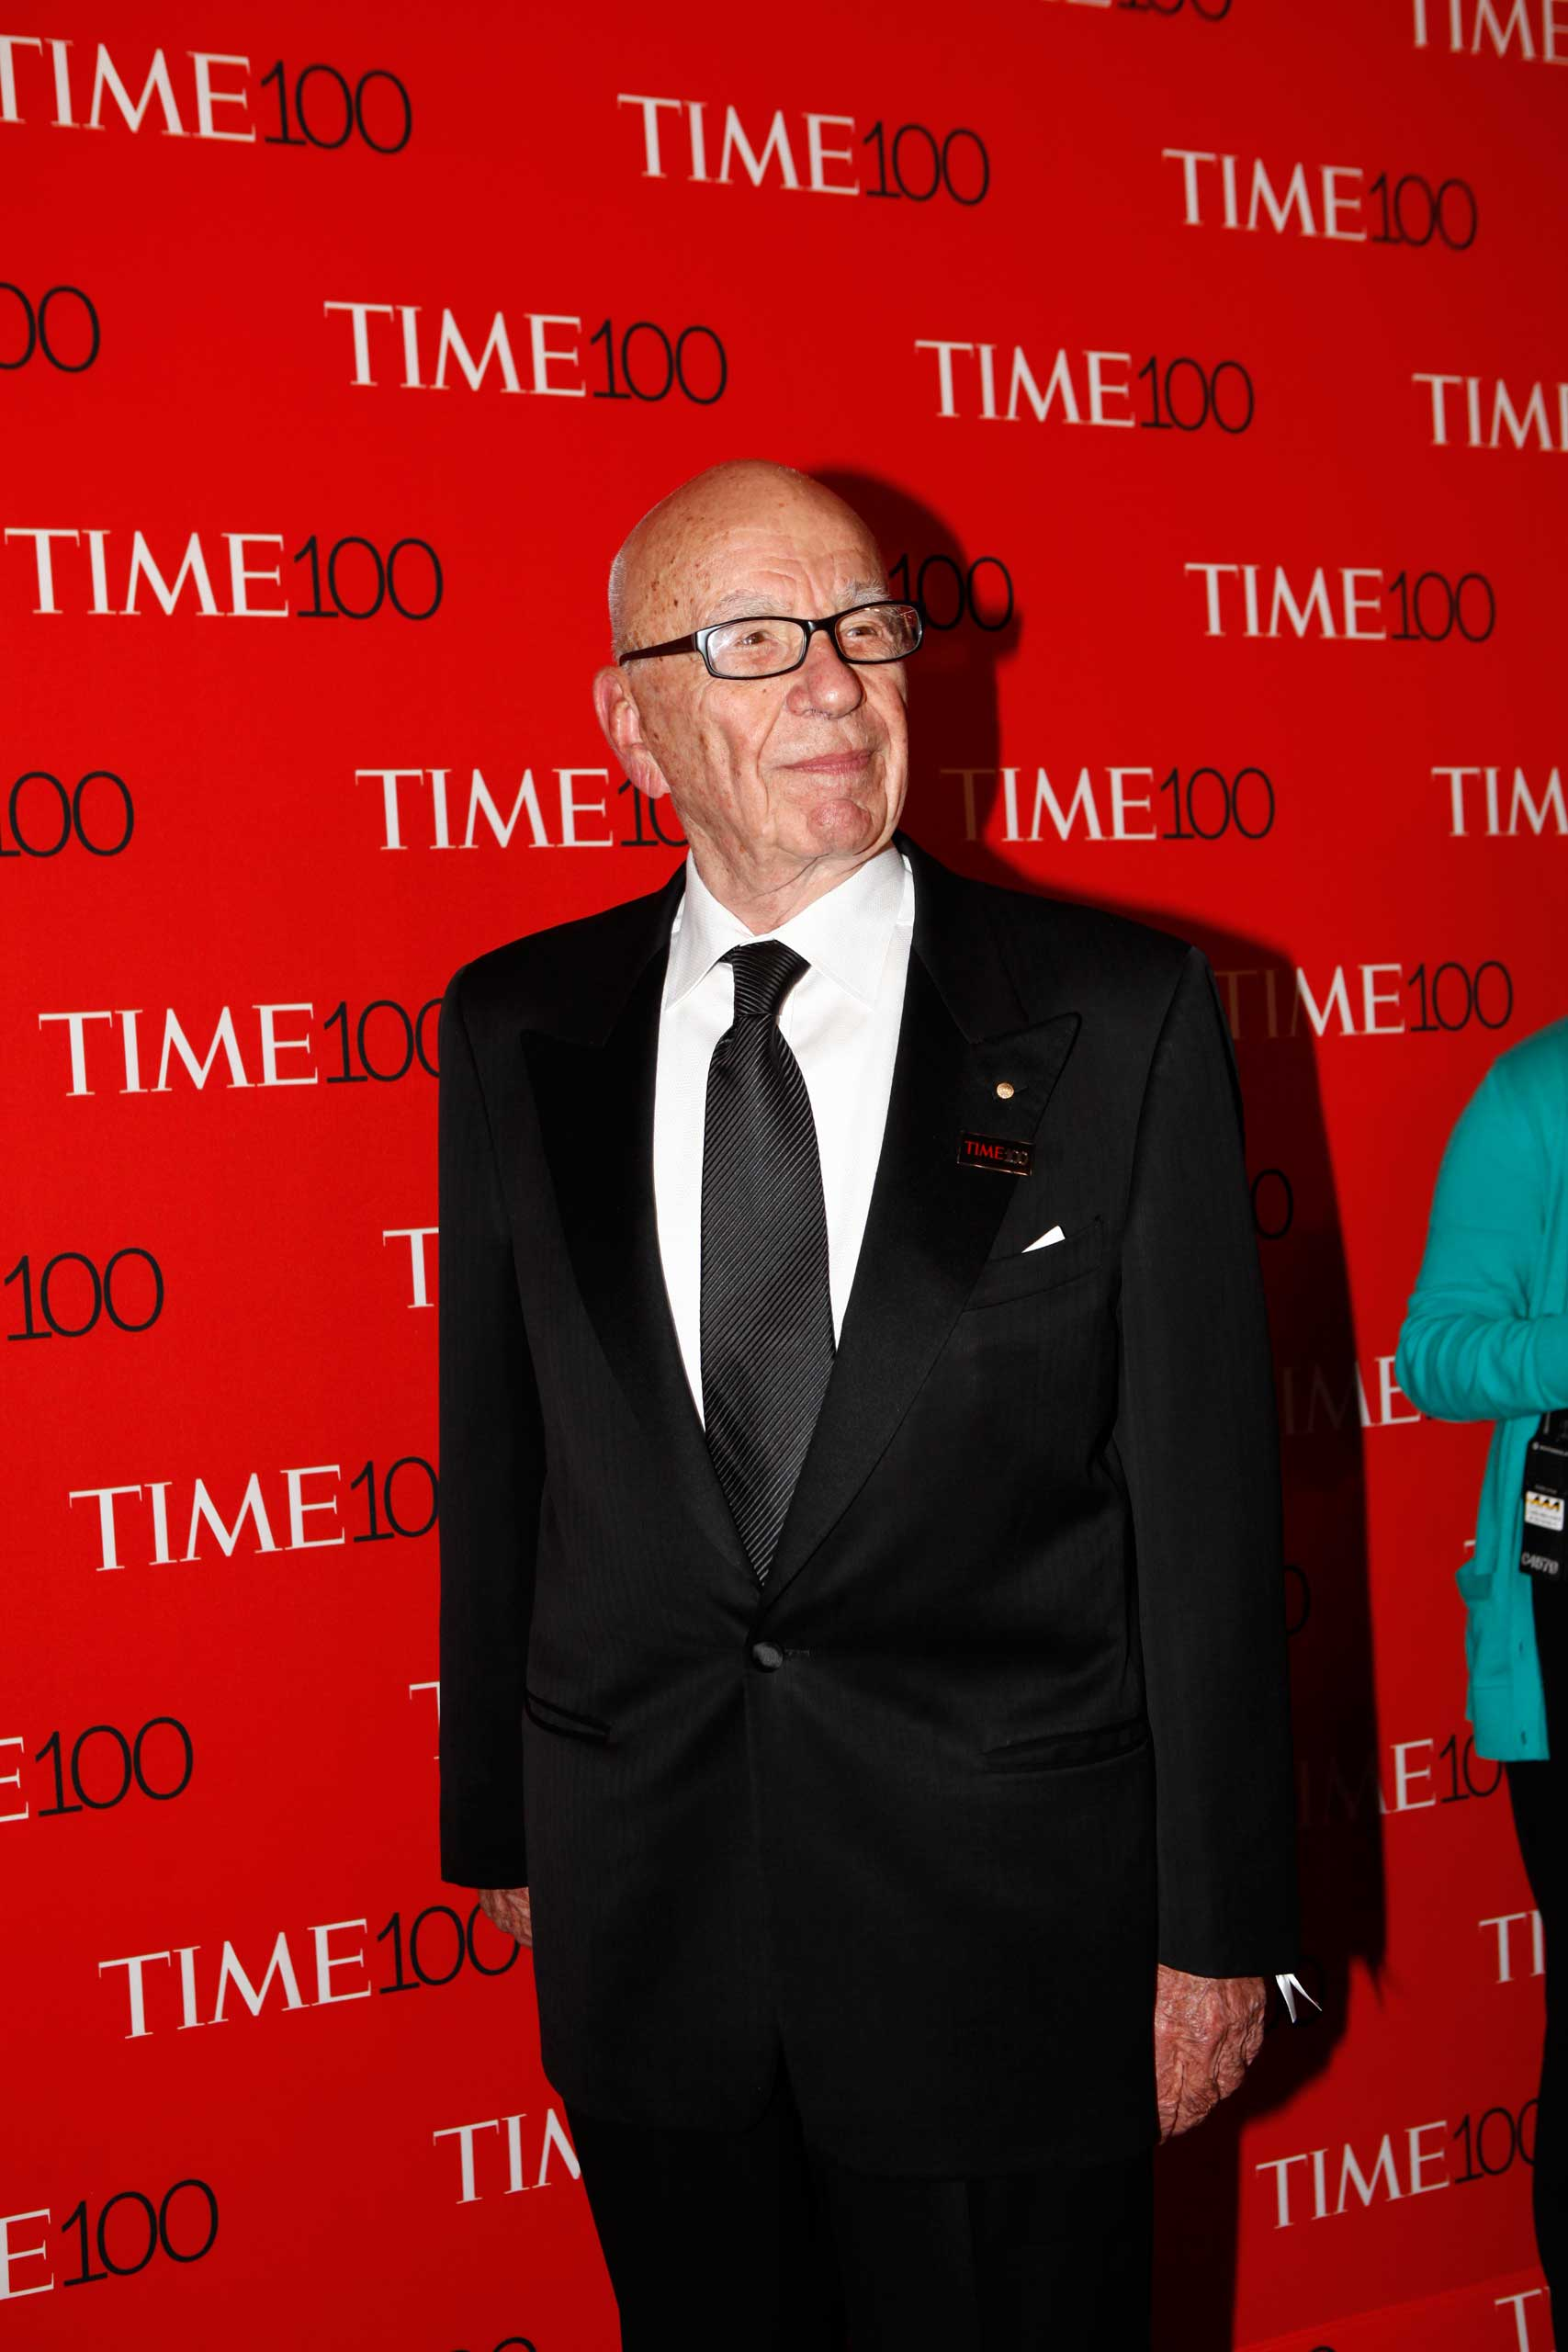 Rupert Murdoch attends the TIME 100 Gala at Jazz at Lincoln Center in New York City on Apr. 21, 2015.